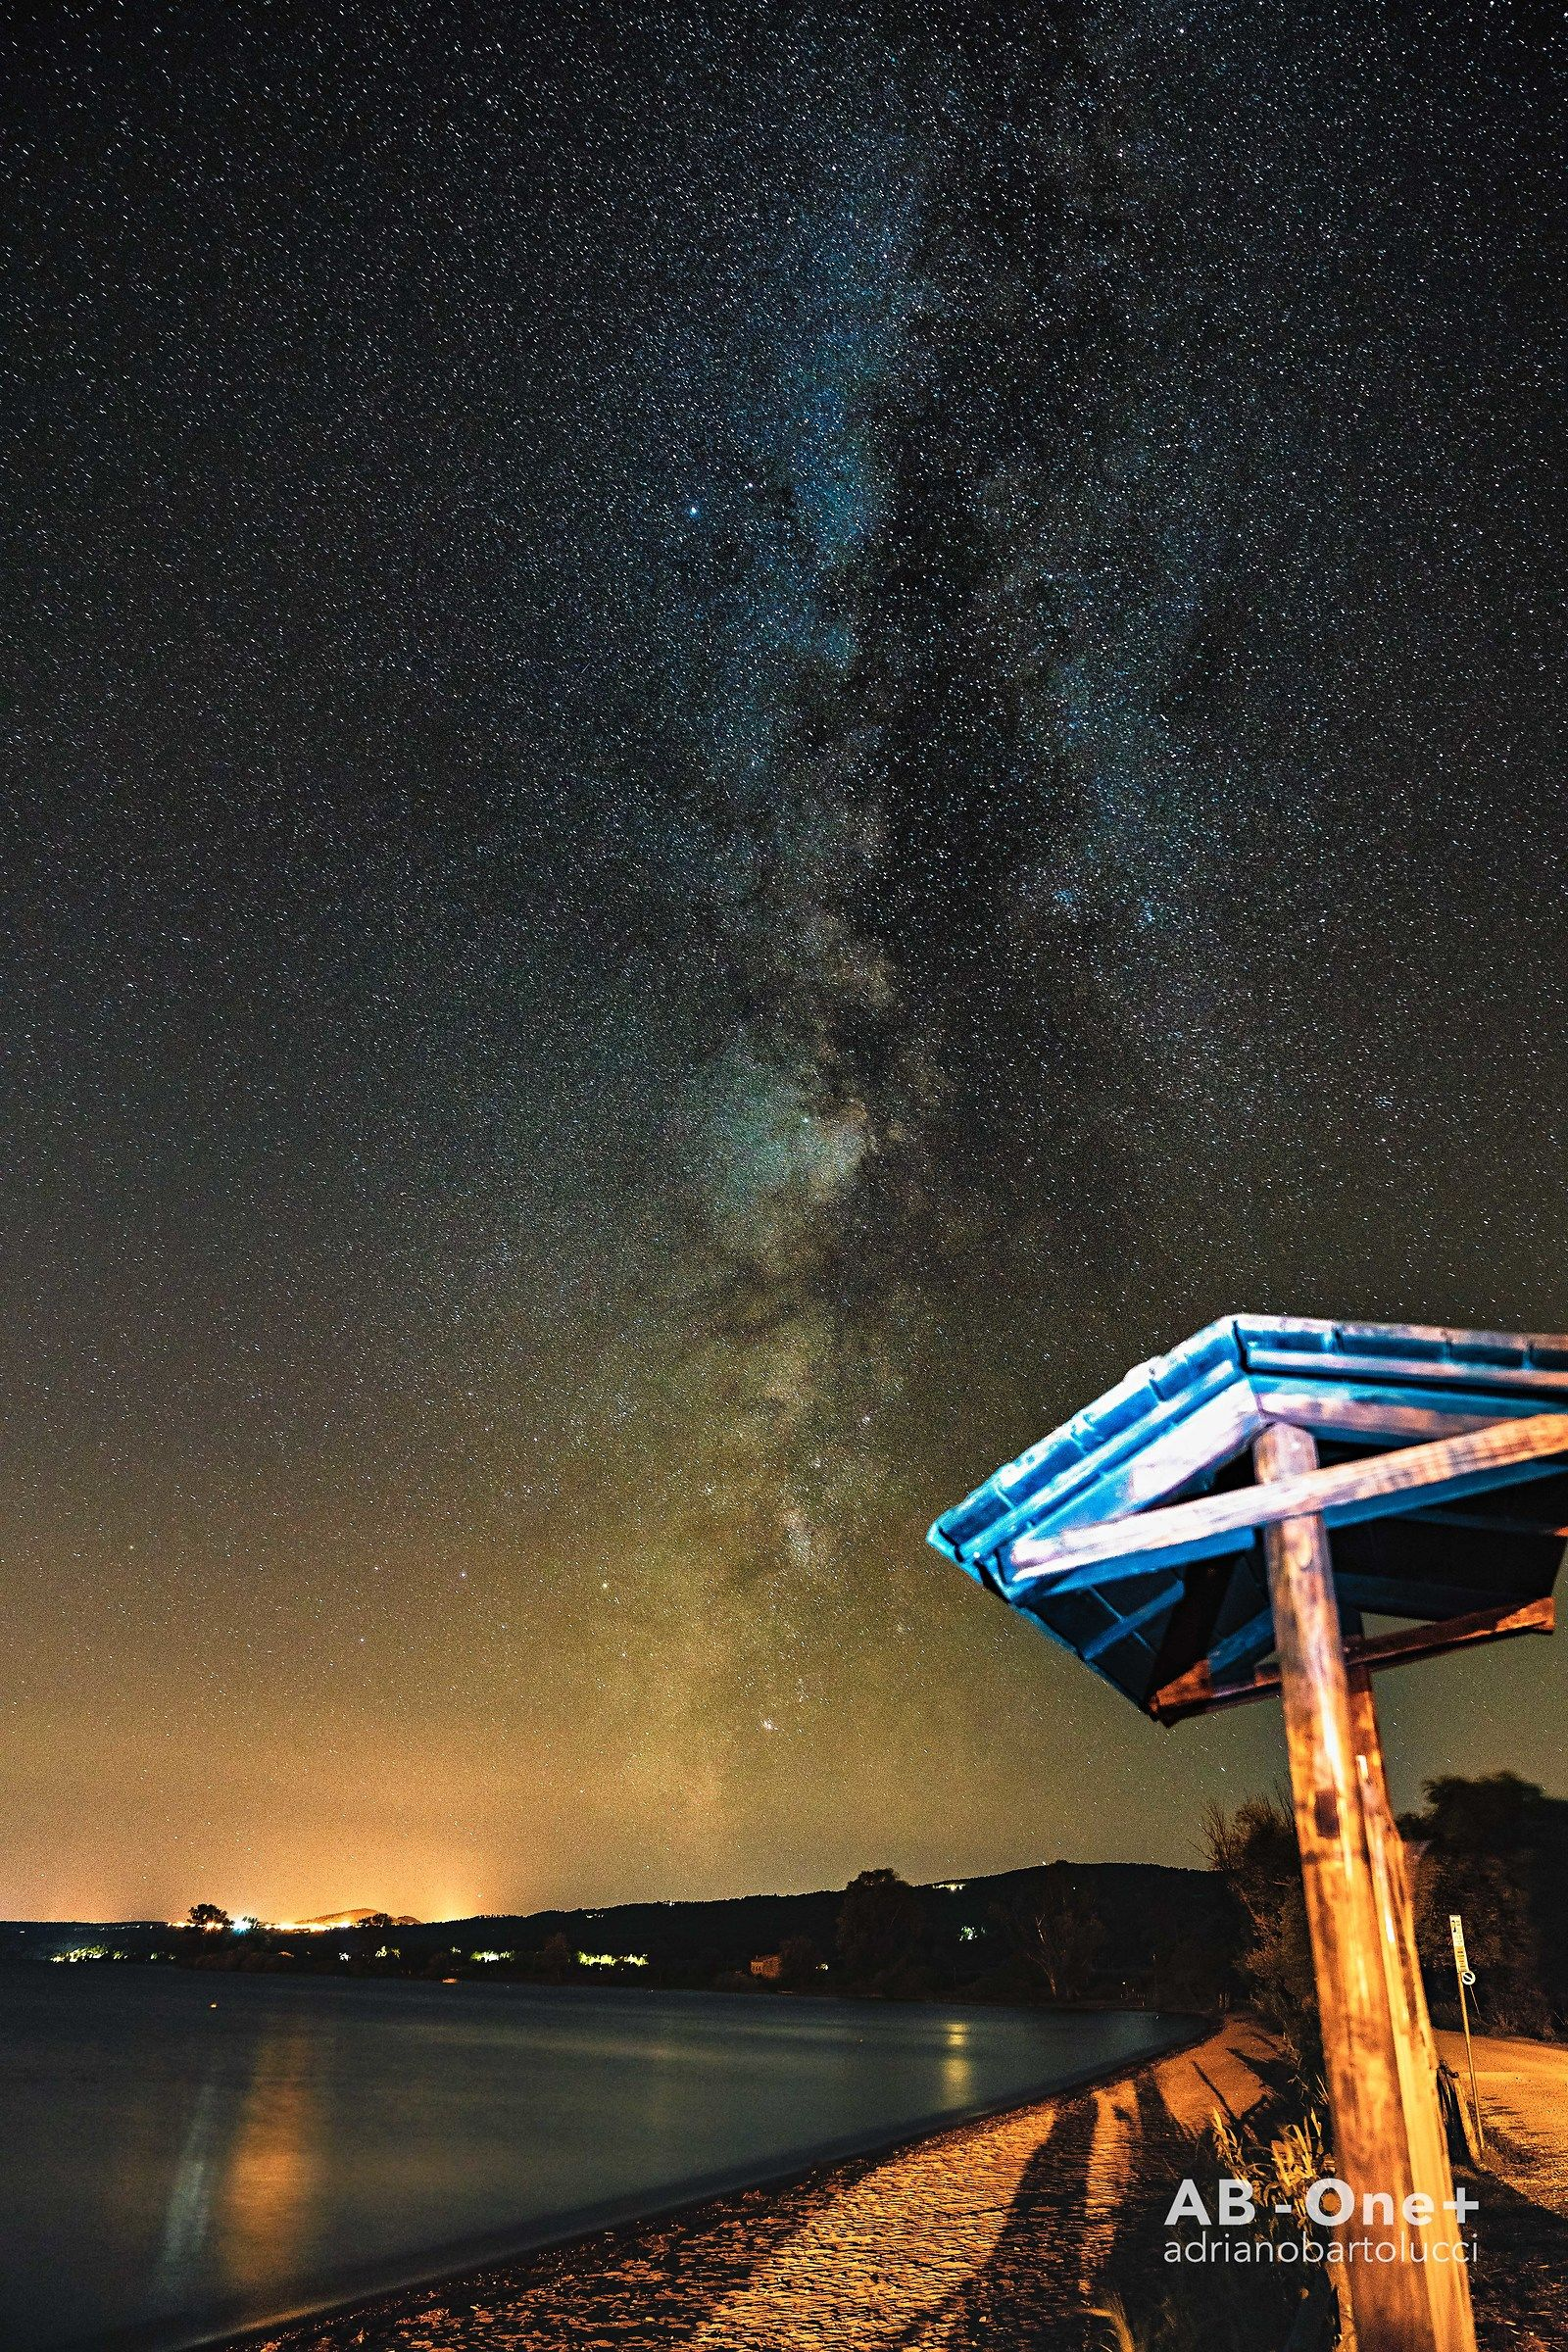 Milkyway in Gradoli - Bolsena's Lake...